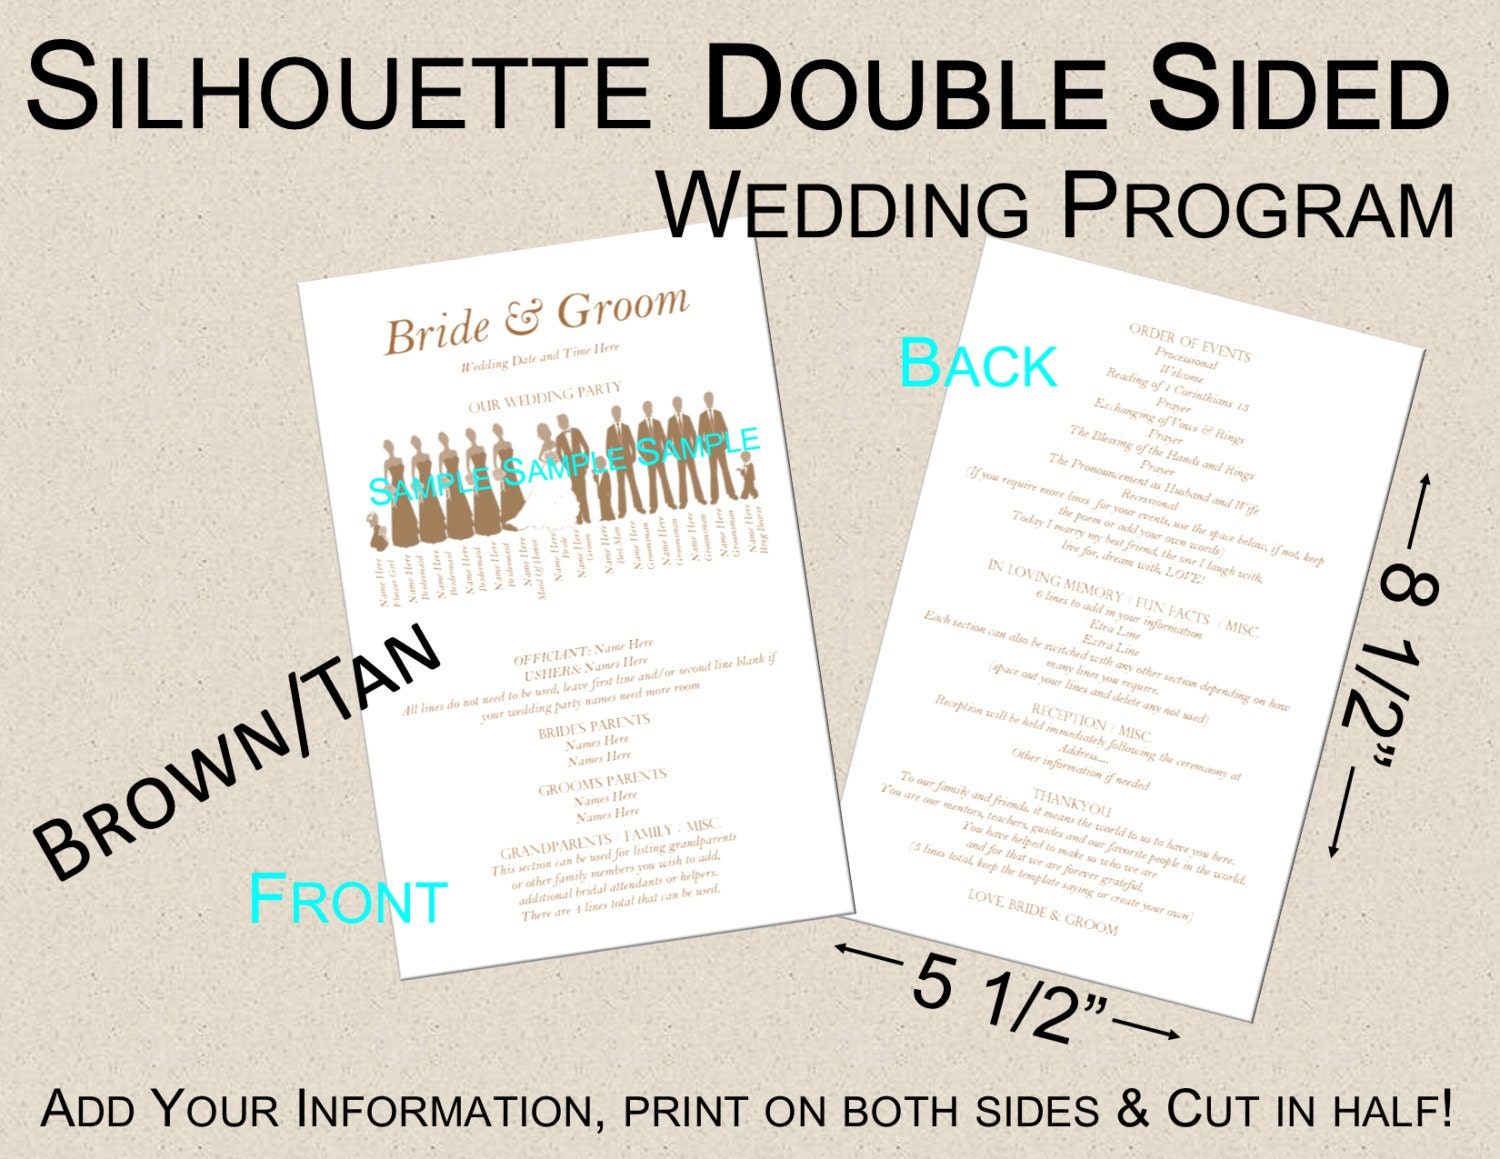 Template Script Double Sided Silhouette Wedding Program By